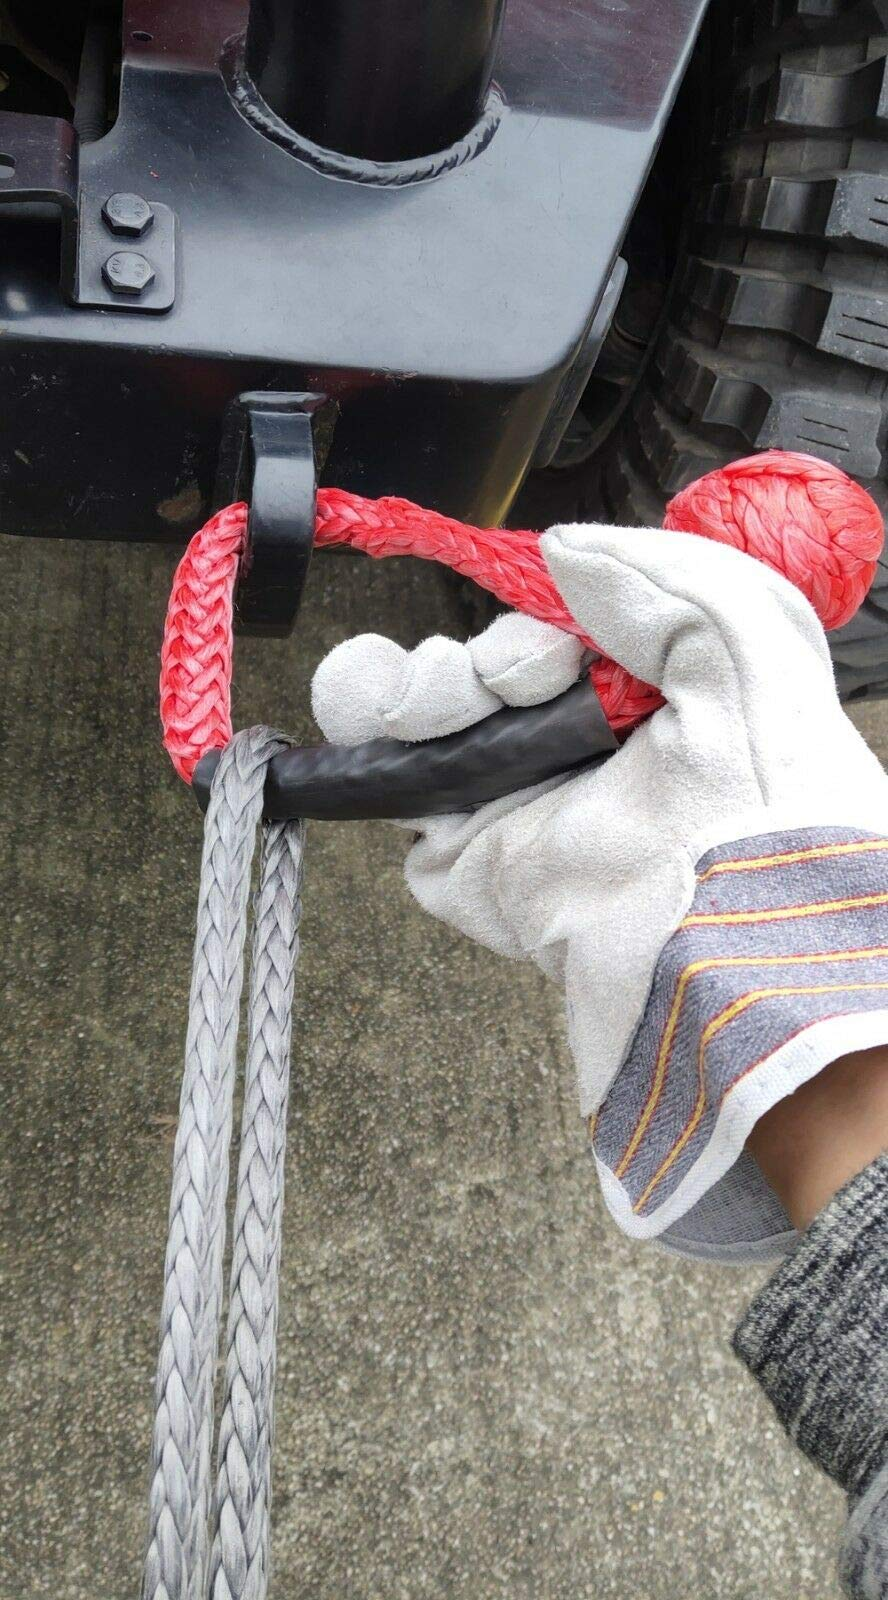 Sinoking UHMWPE Synthetic Soft Shackle Rope 7/16 in. (30000lbs/14T Breaking strength) for Towing, Off-Road Vehicle Recovery,Red. by SINOKING